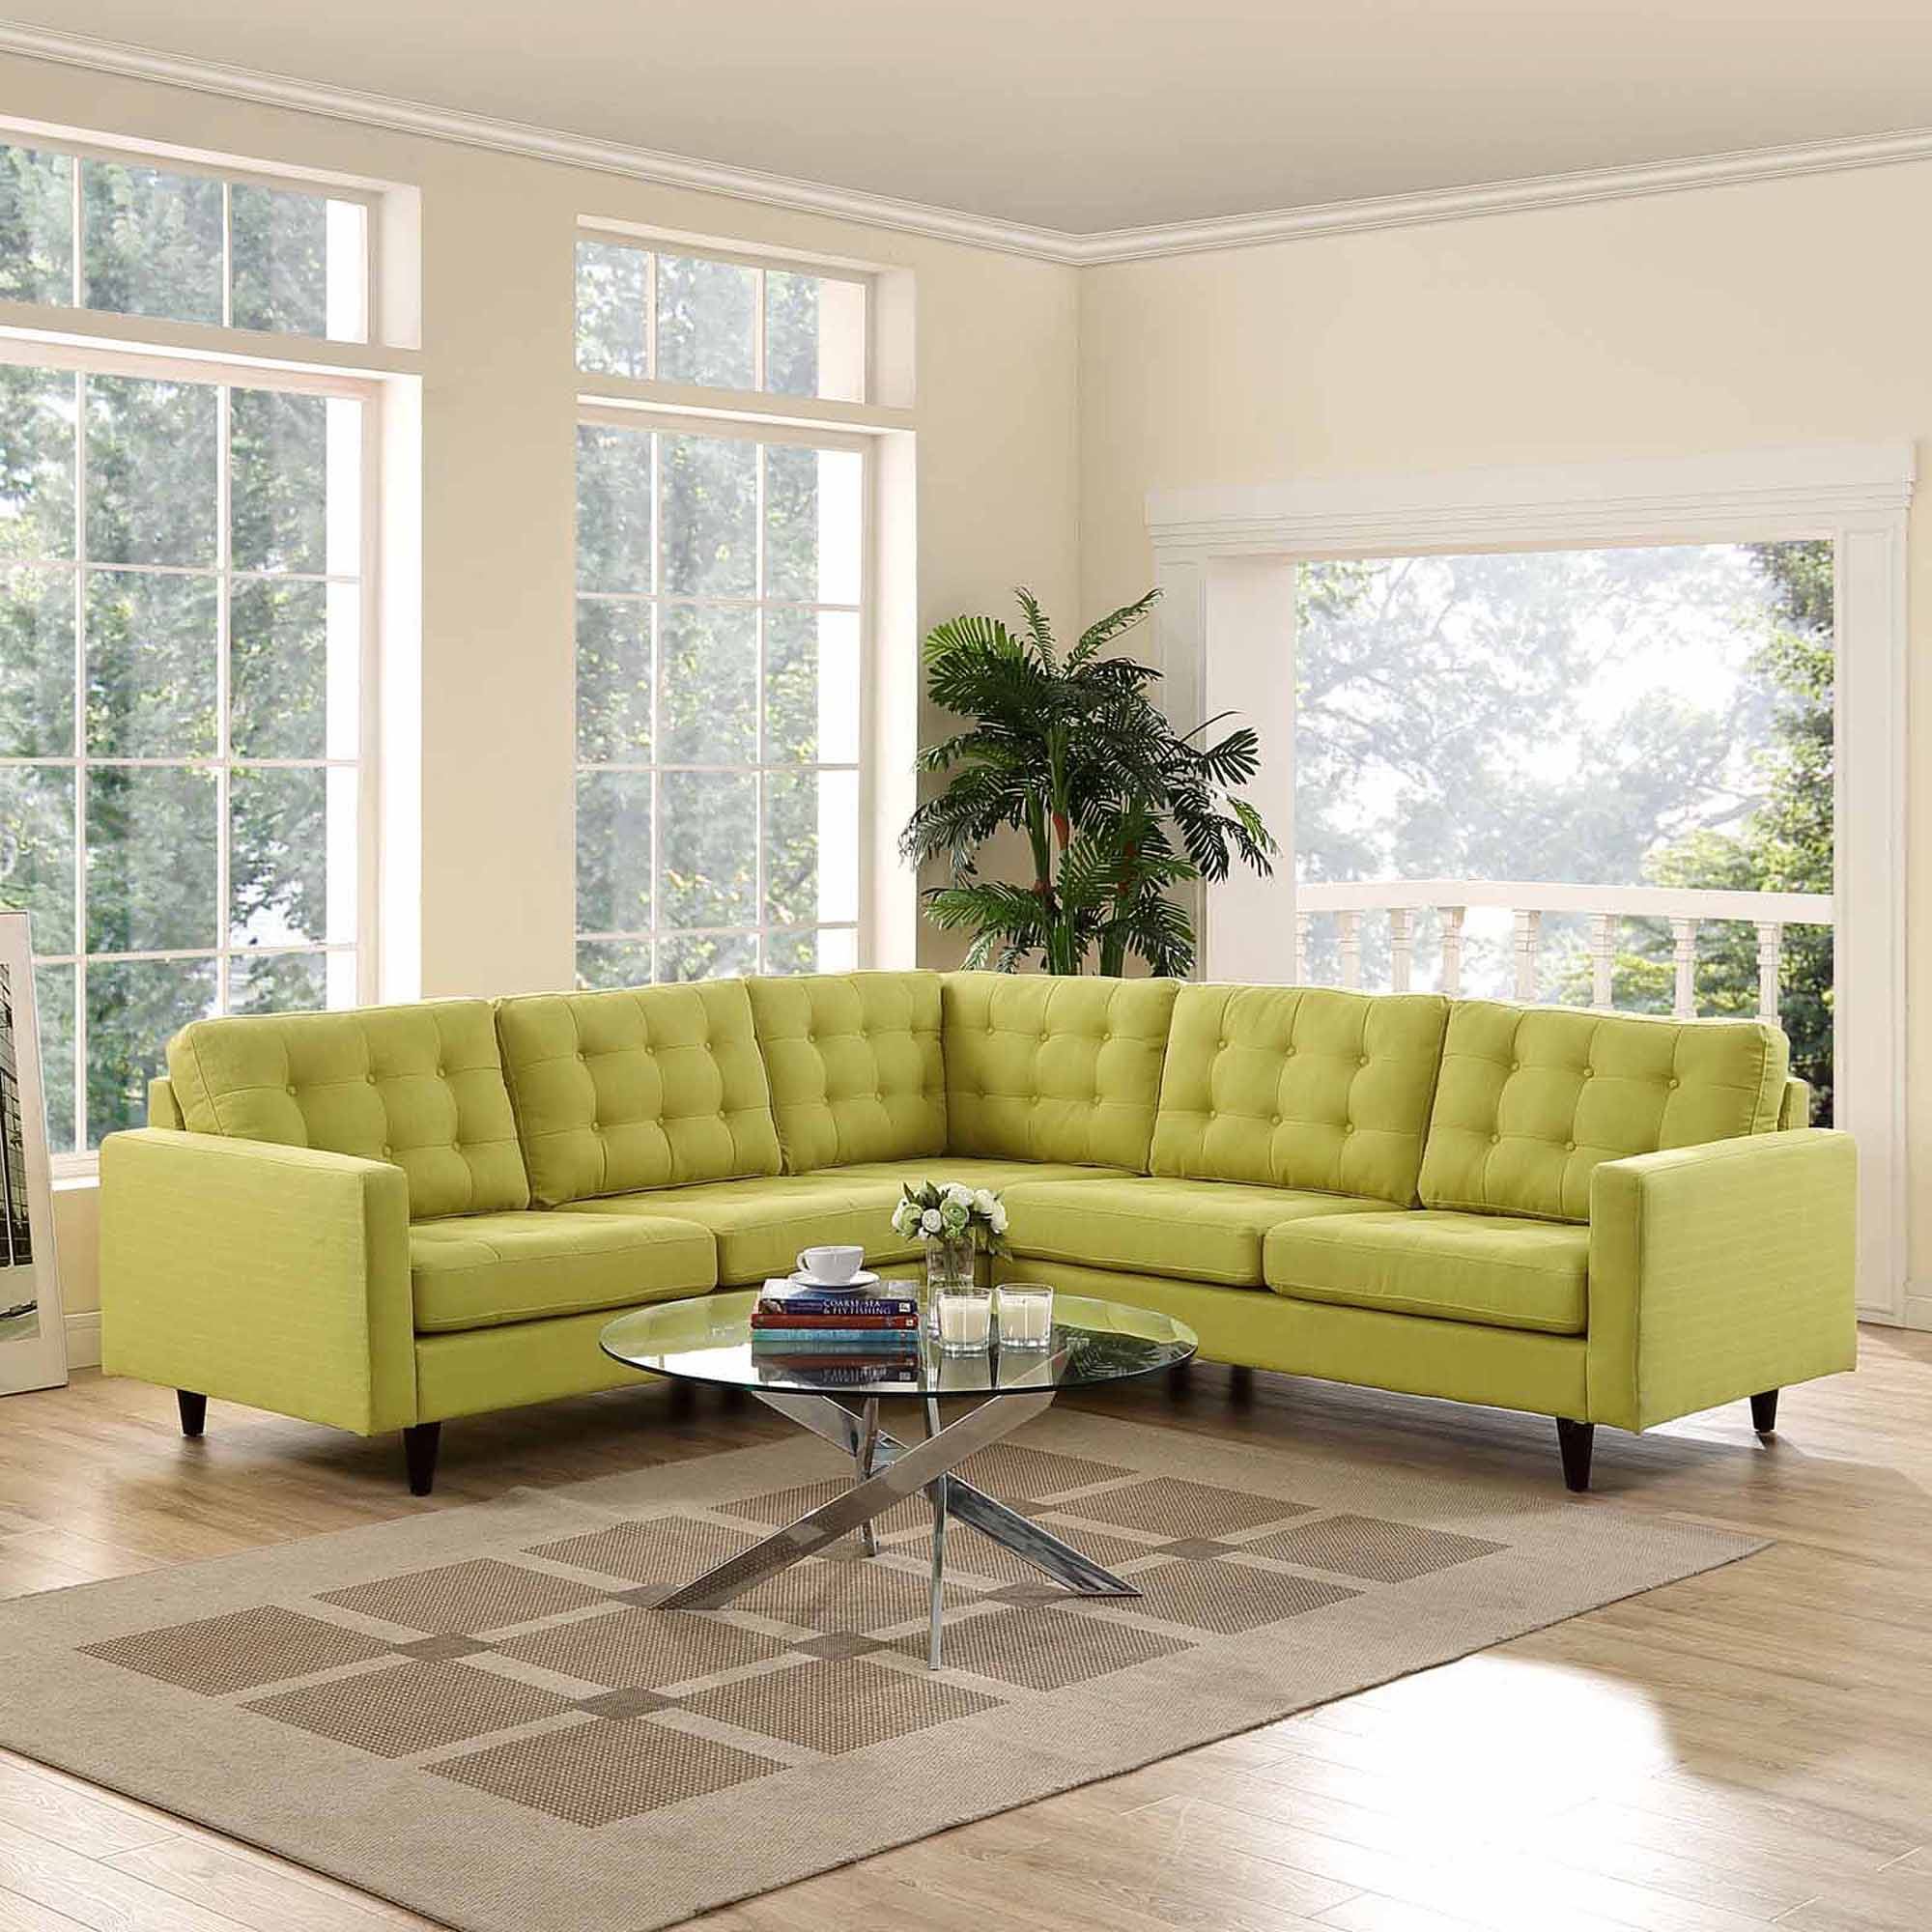 Modway Empress 3 Piece Fabric Sectional Sofa Set Multiple Colors